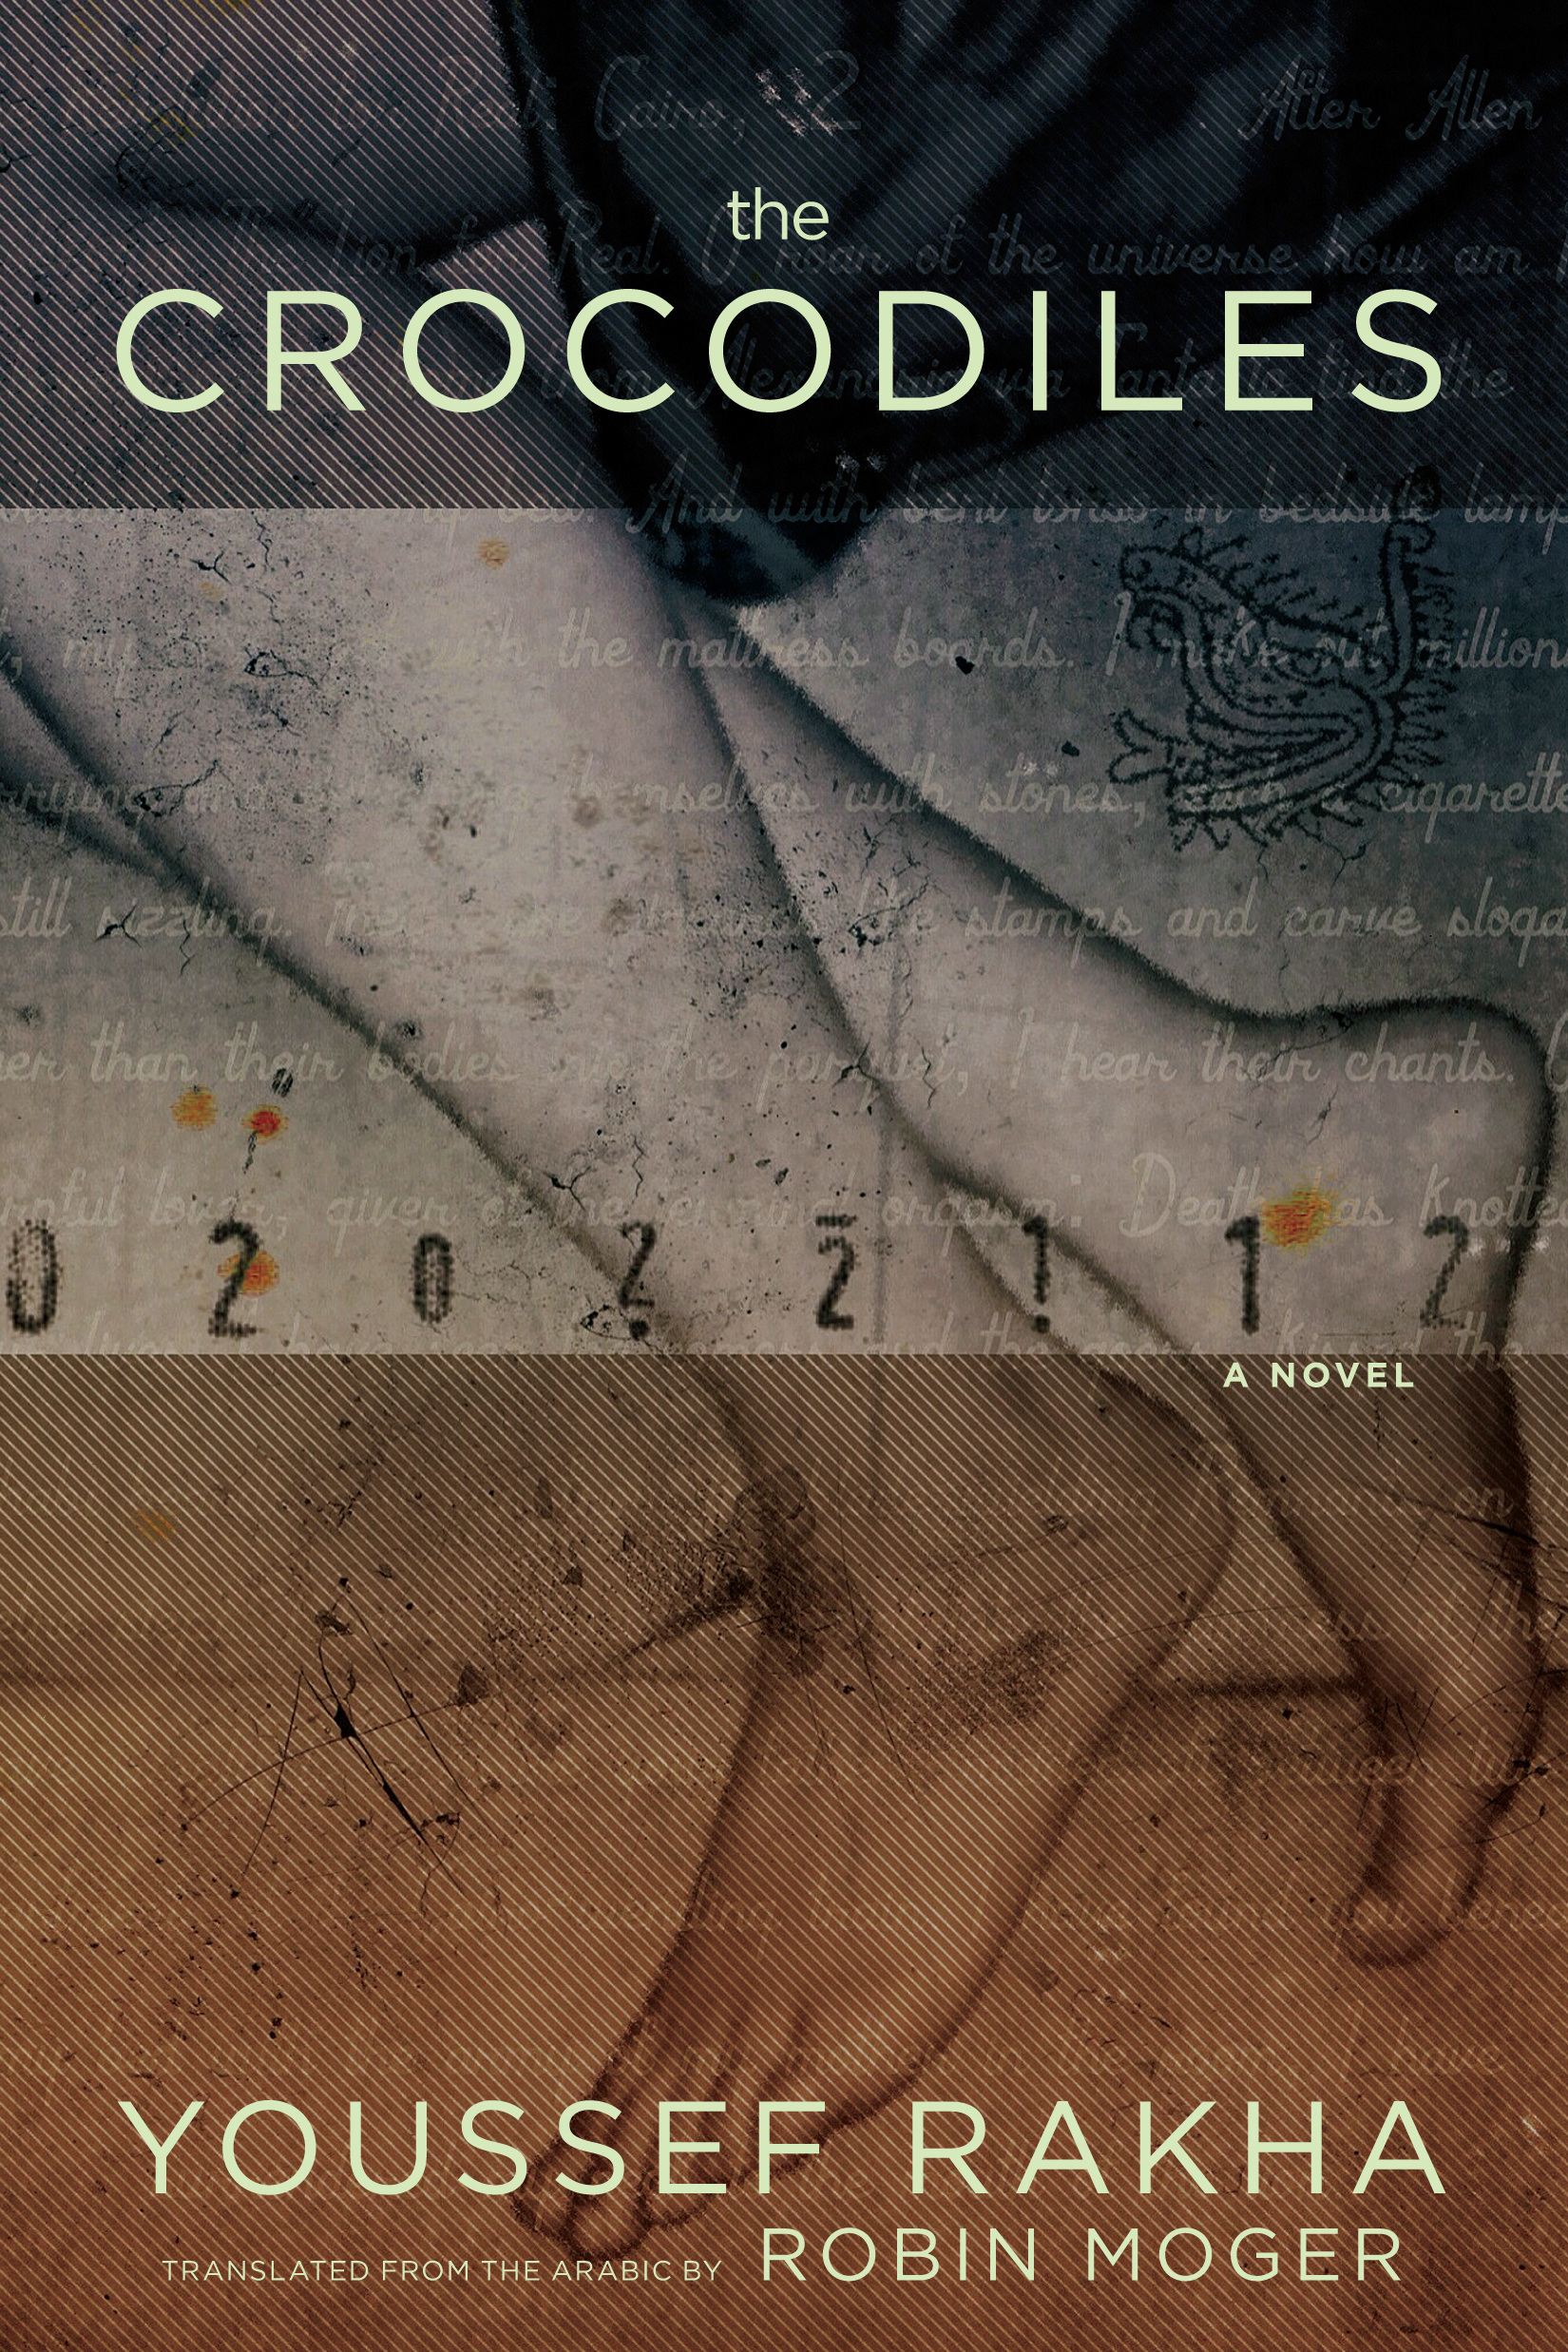 The Crocodiles_book cover